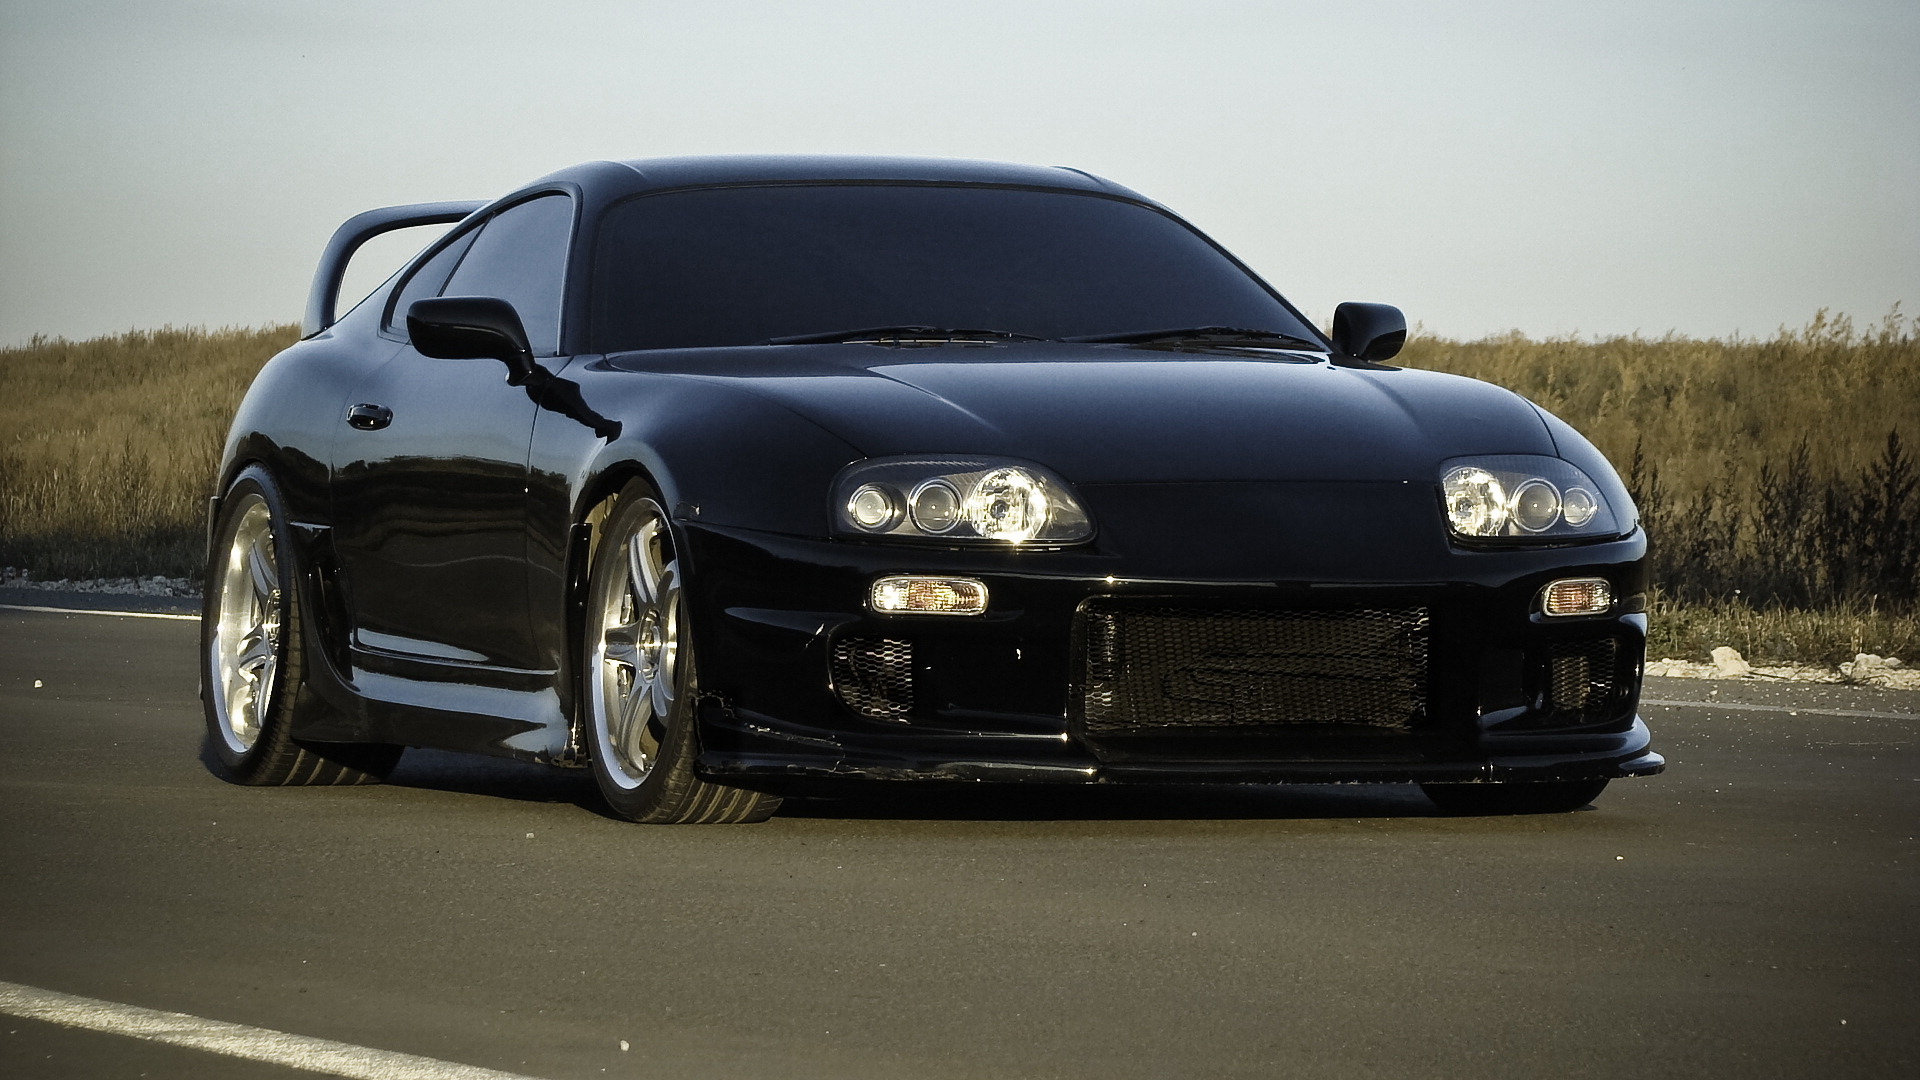 c988c6044bda Toyota Supra HD Wallpaper